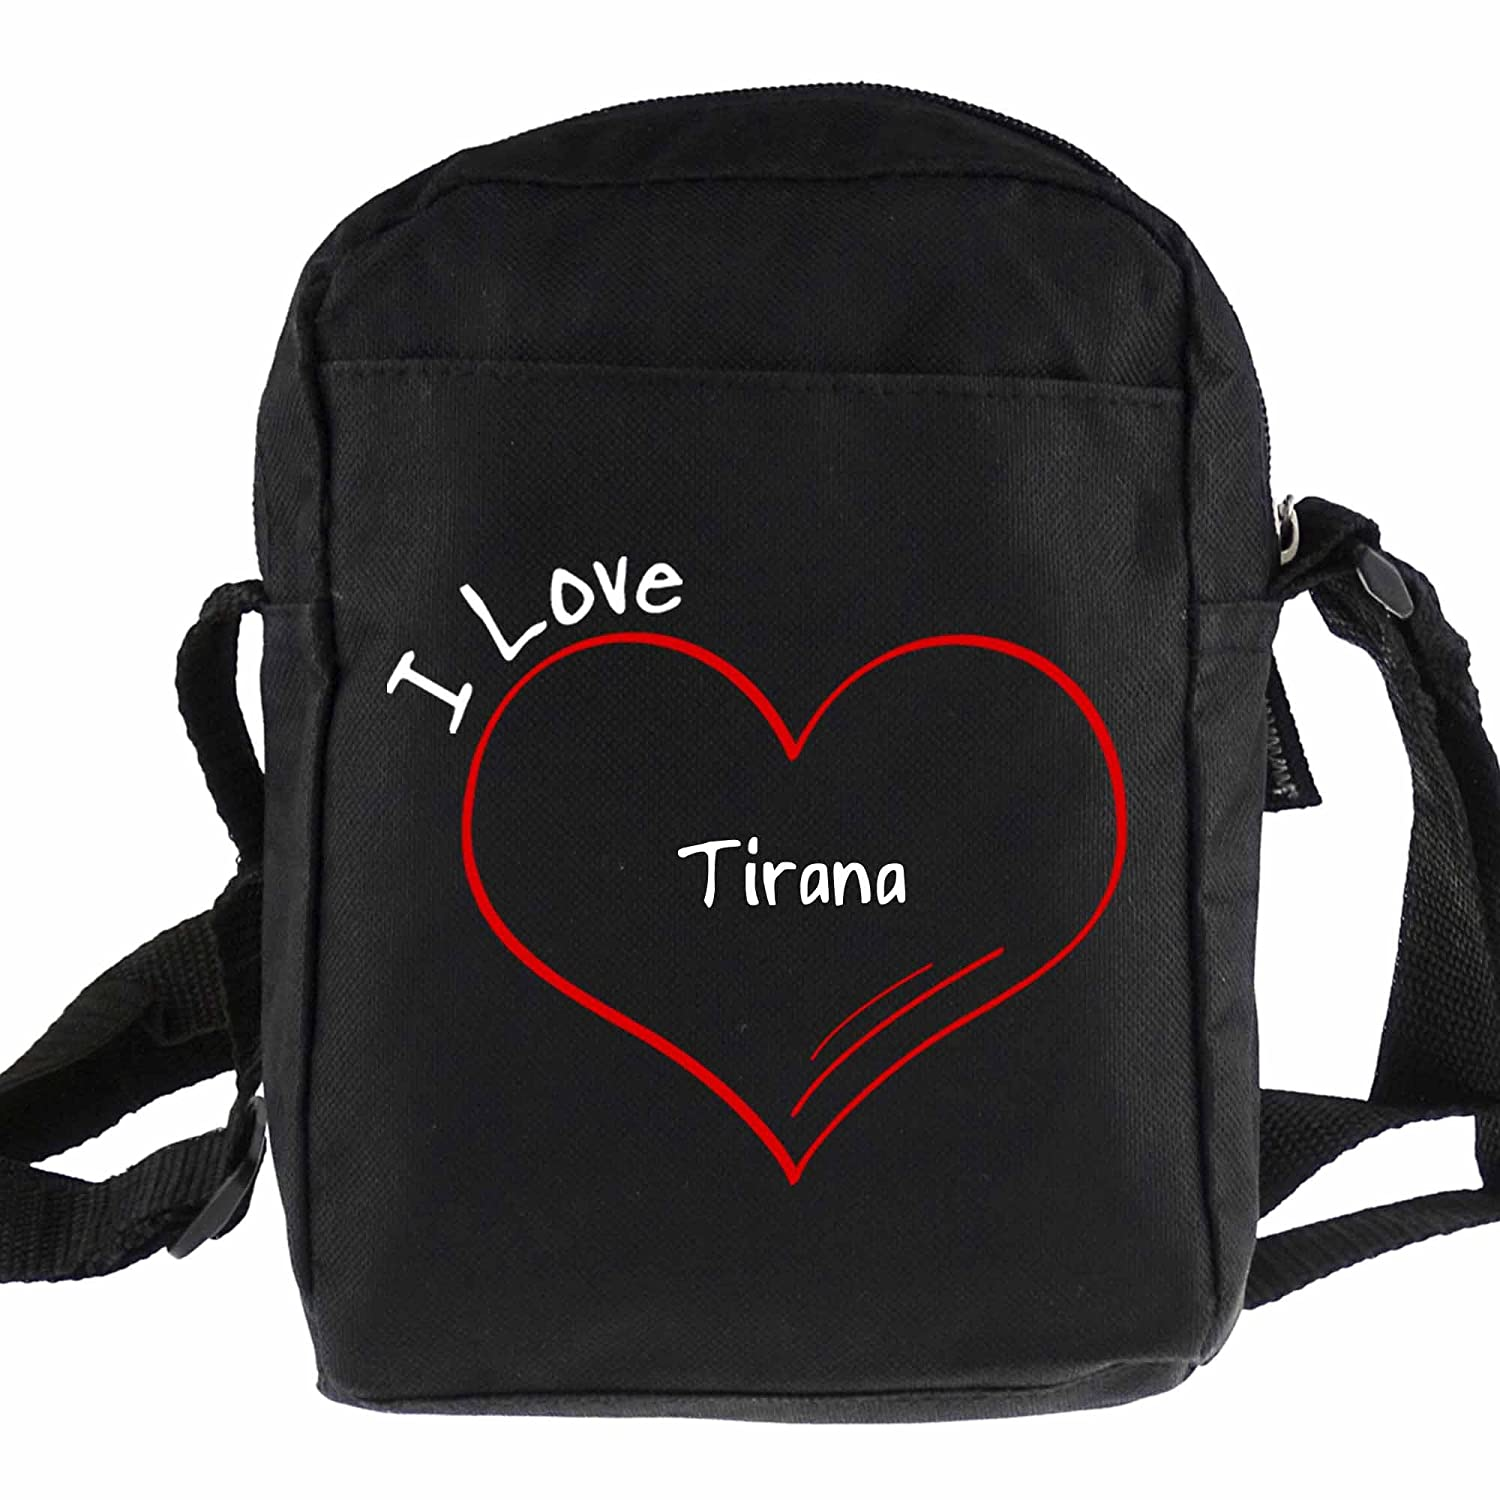 Modern I Love Tirana Black Shoulder Bag